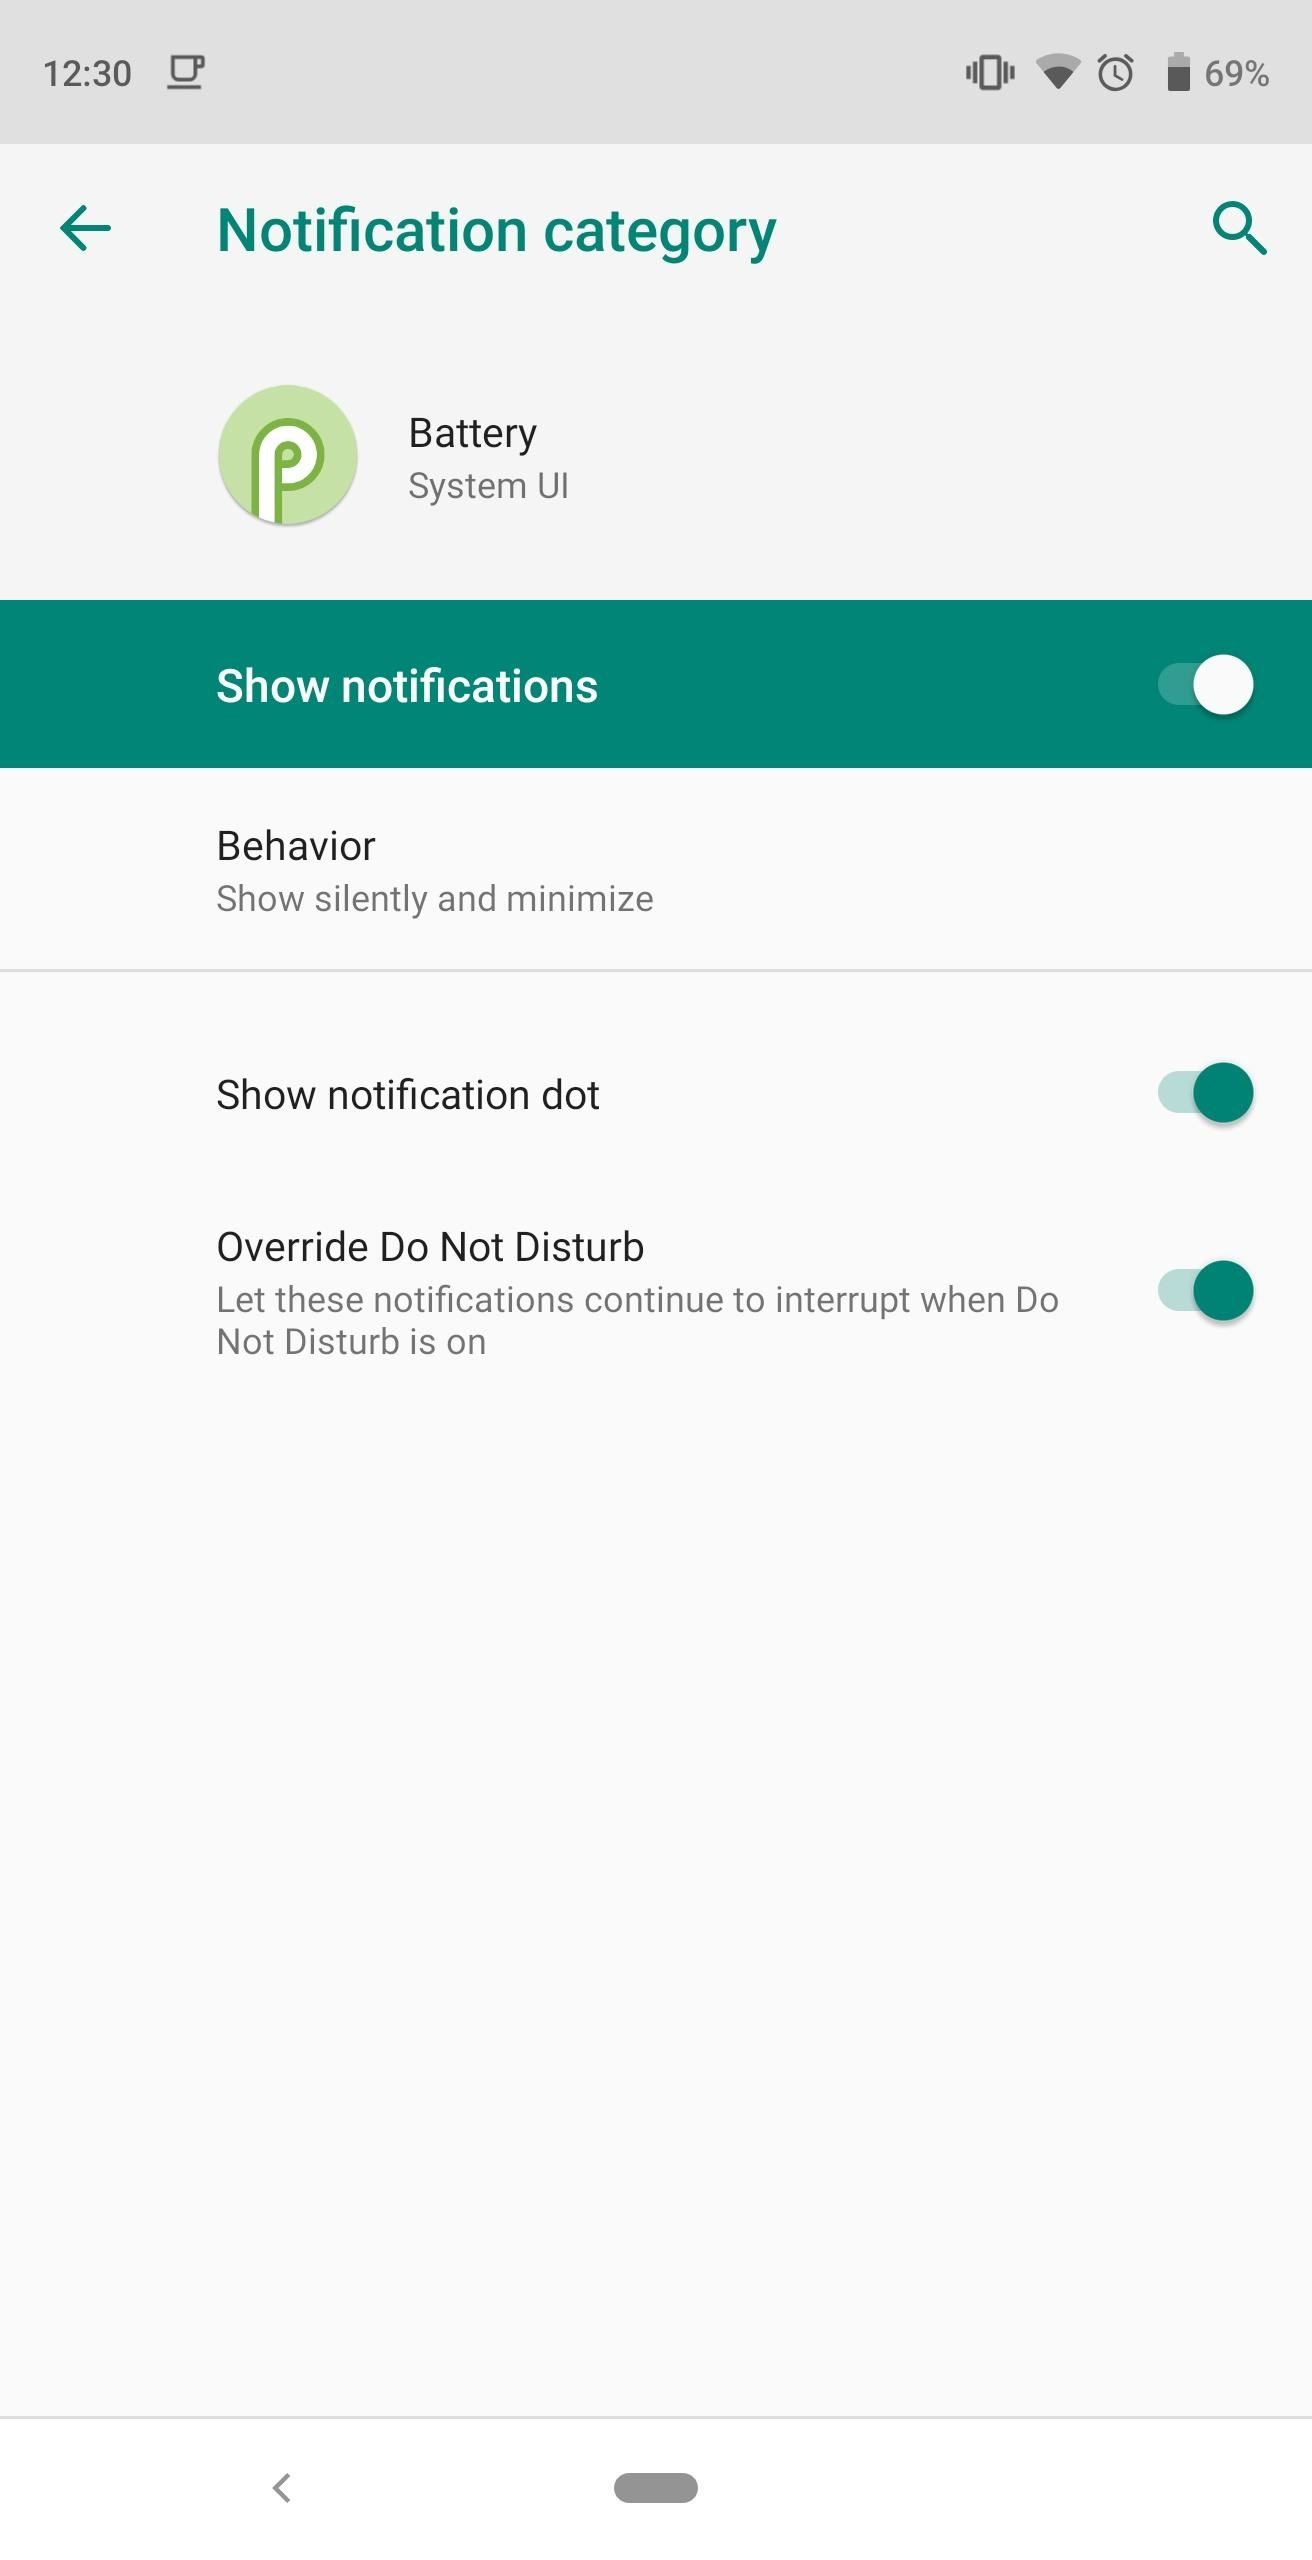 How to Stop the Low Battery Warning and Notifications in Android 9.0 Pie